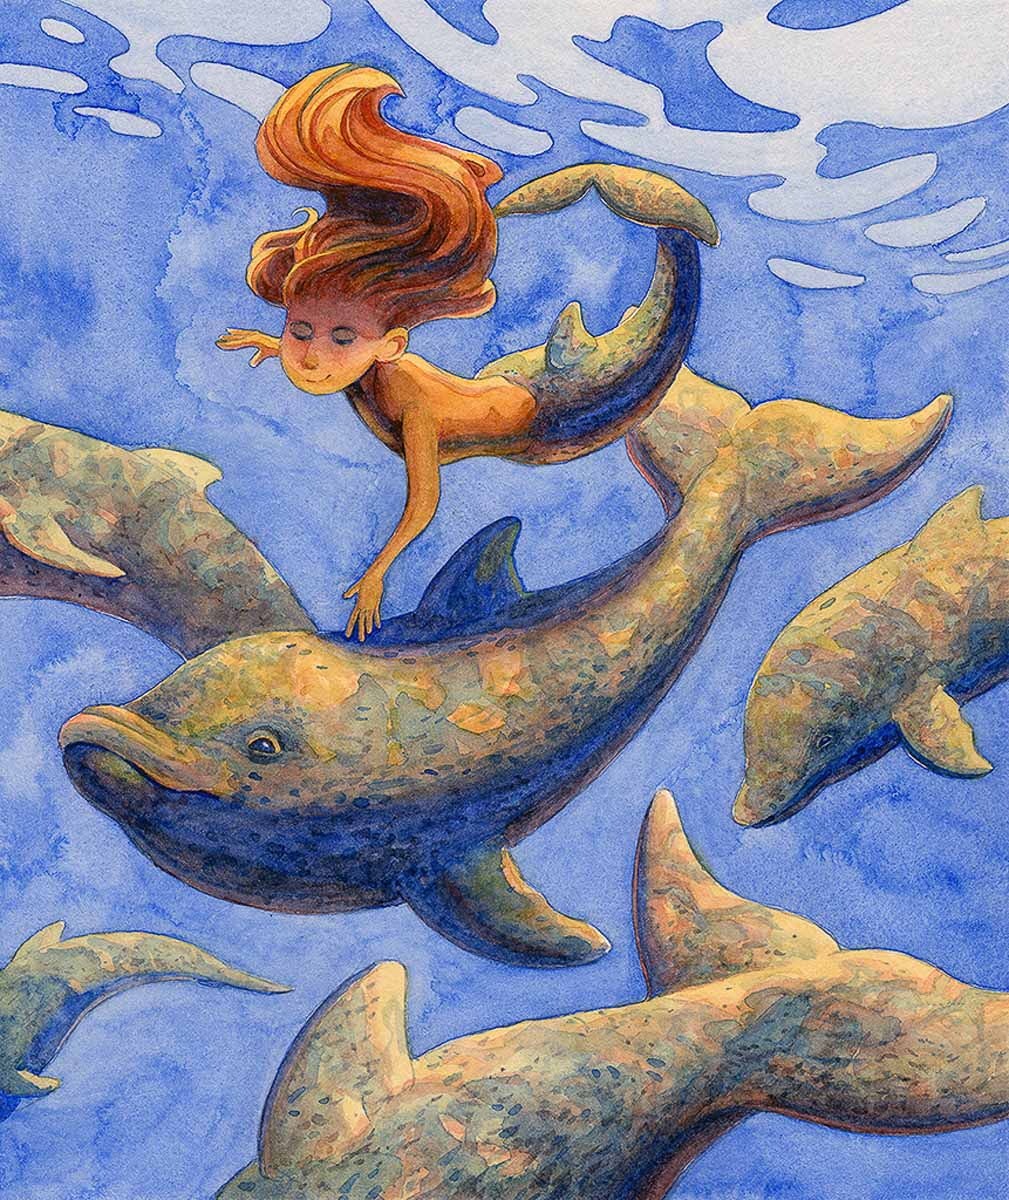 """Dolphins and Mermaid"" by Marianna Smith"